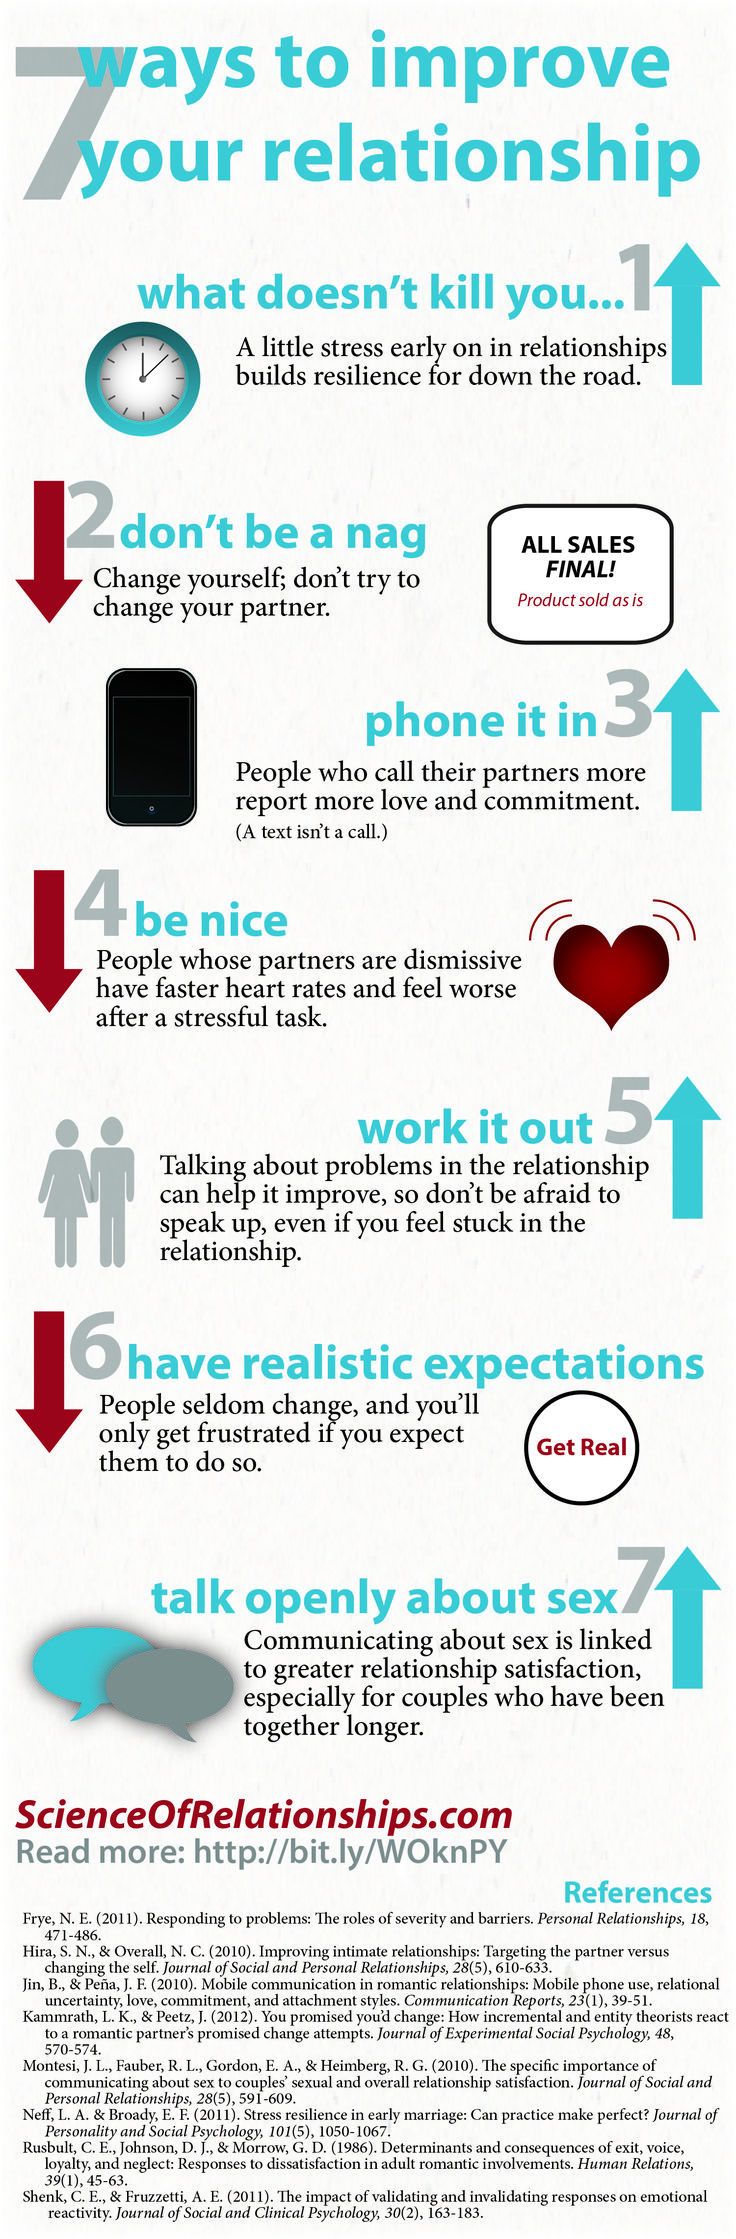 Science of Relationships | Infographic: 7 Ways to Improve Your Relationship